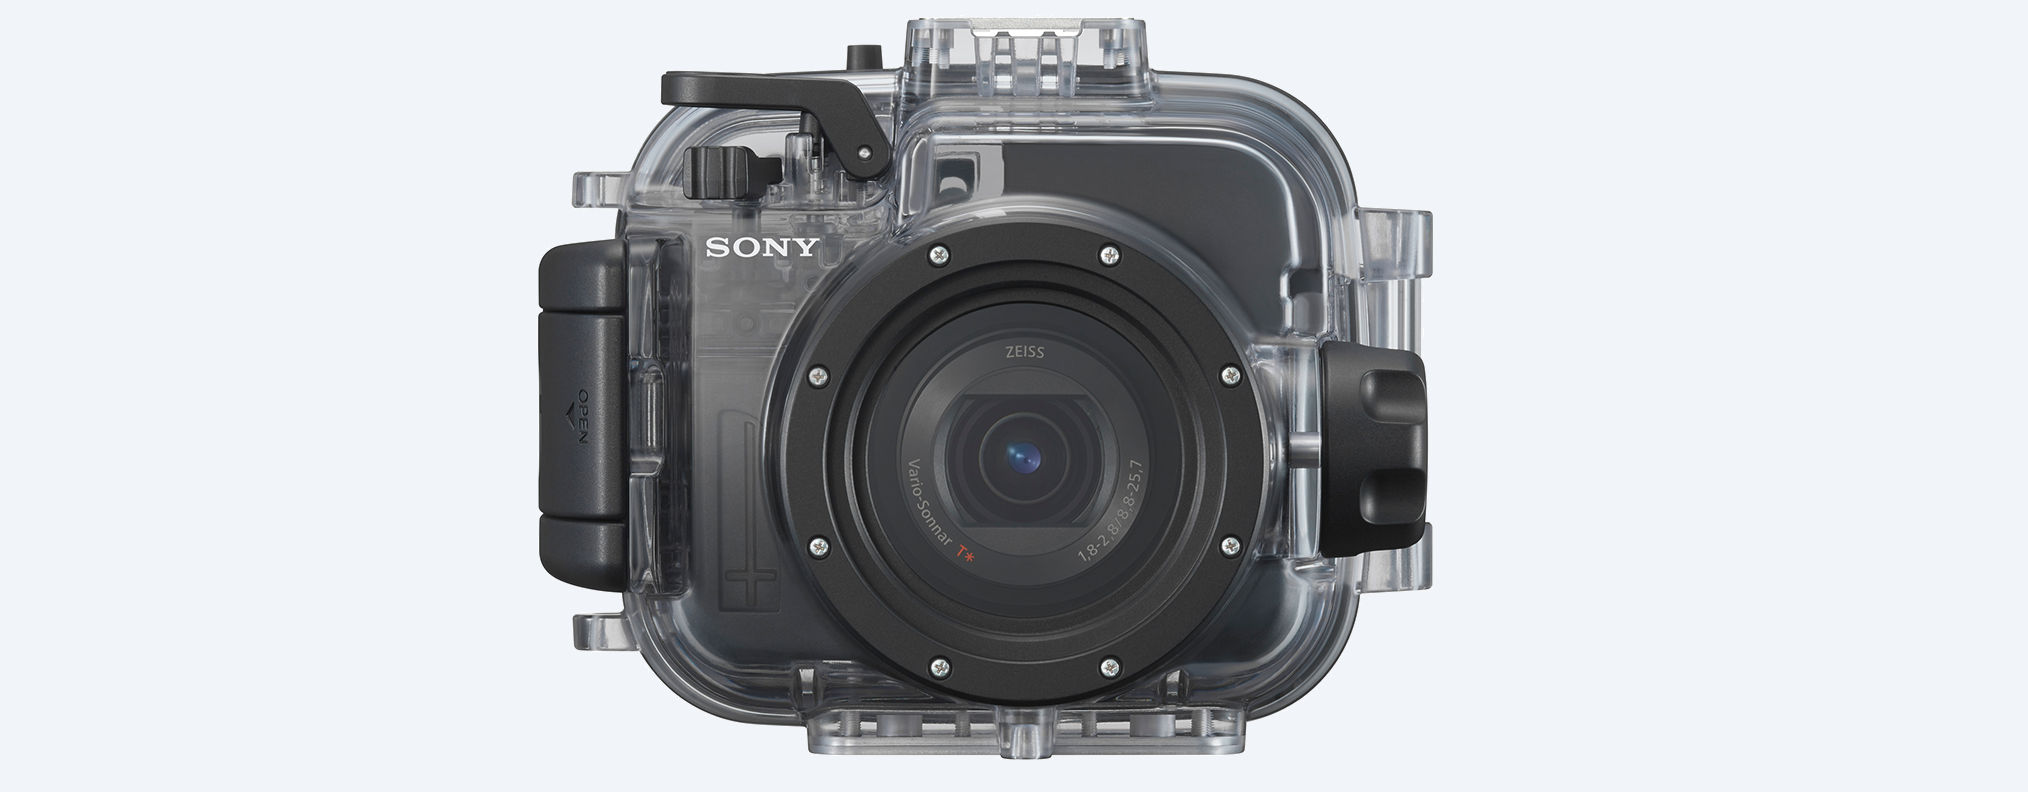 Better Underwater Shooting With Firmware Update For The Sony Rx100m3 Compact Camera Dsc Rx100 M4 Being And Offering A Large Sensor Bright Wide Lens Full Manual Control Sonys Cyber Shot Range Of Cameras Has Proved Popular